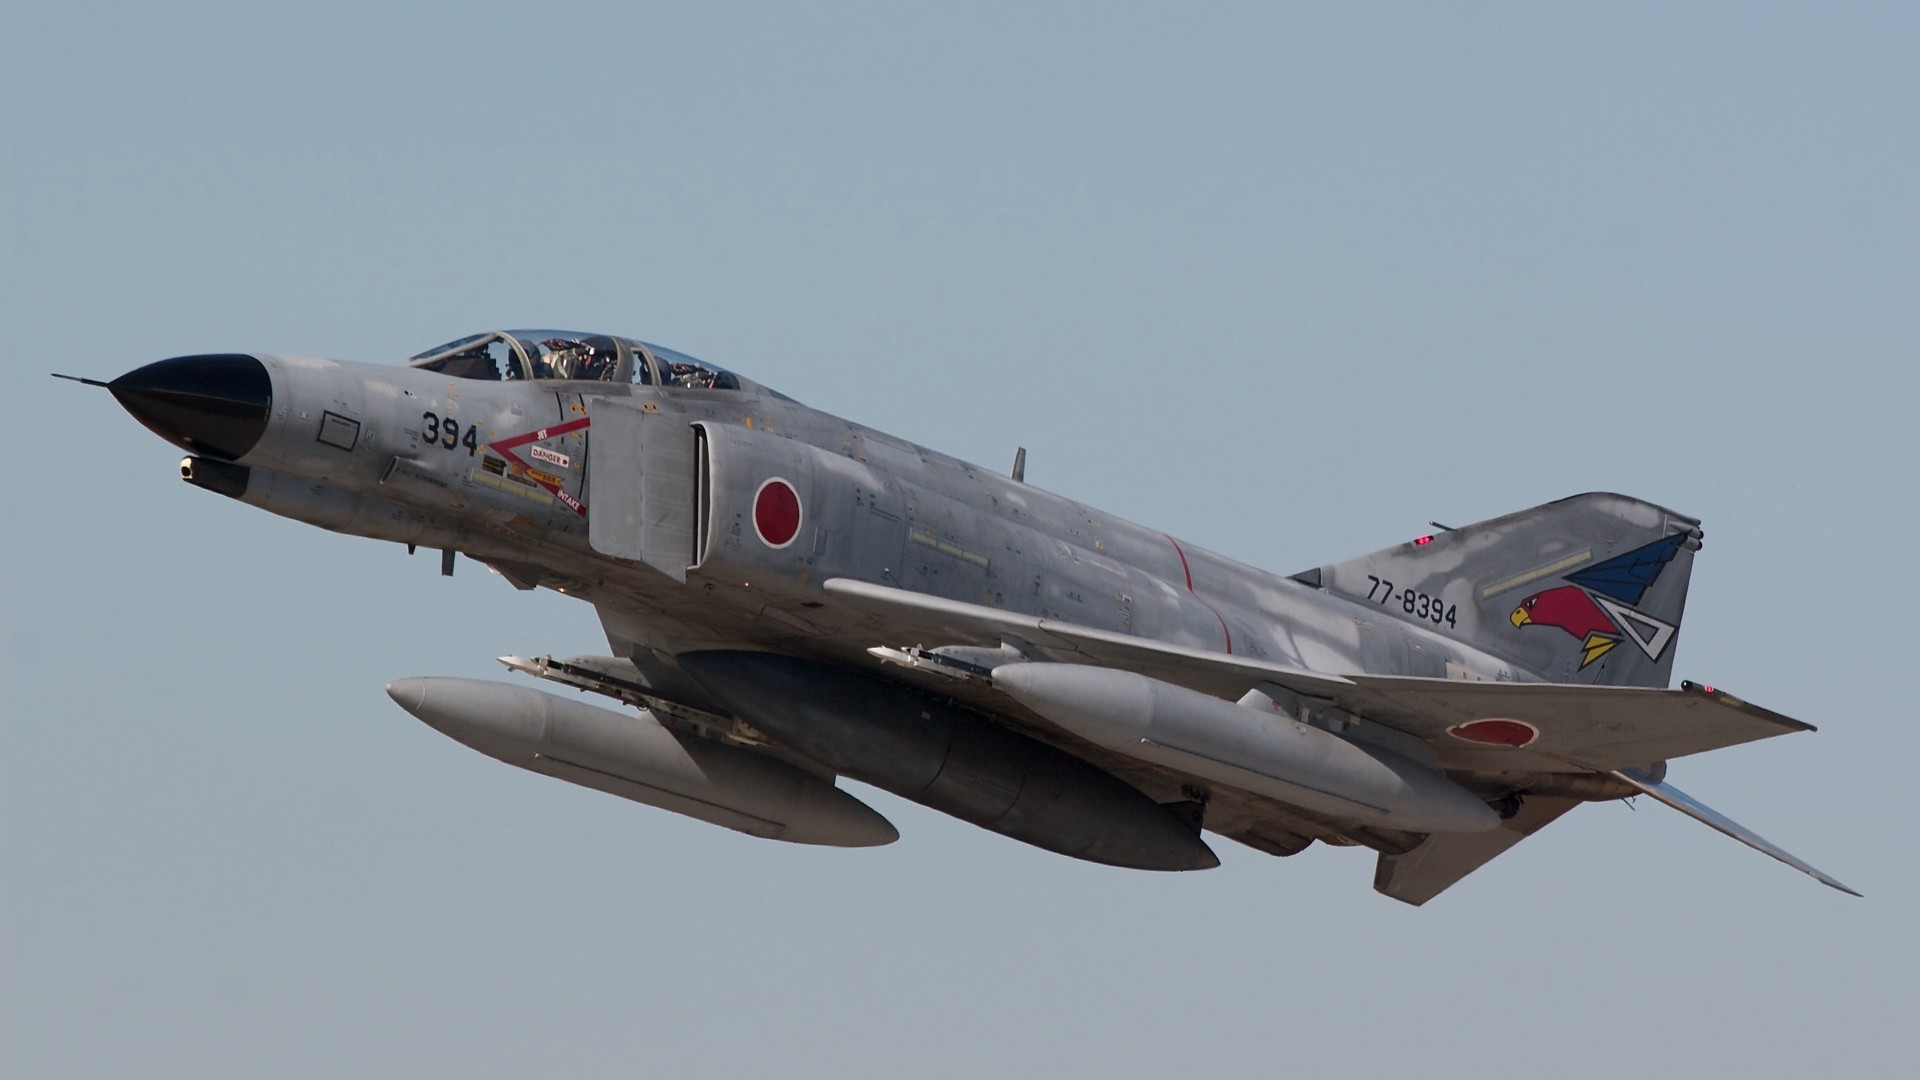 1920x1080  Wallpaper mitsubishi f-4ej, phantom ii, aircraft, fighter